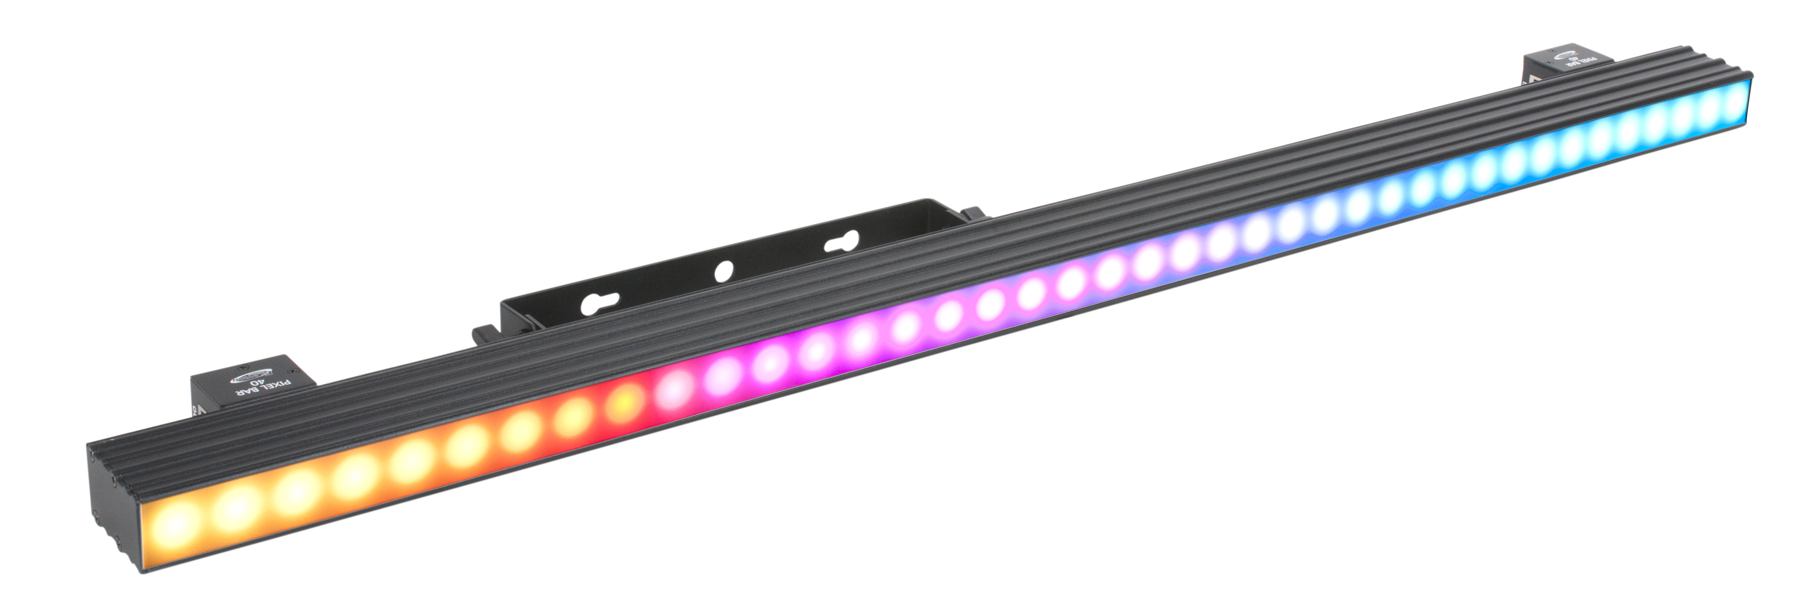 American DJ PIXEL BAR 12 36 DMX Channel Linear Fixture with (12) SMD 3-in-1 LEDS